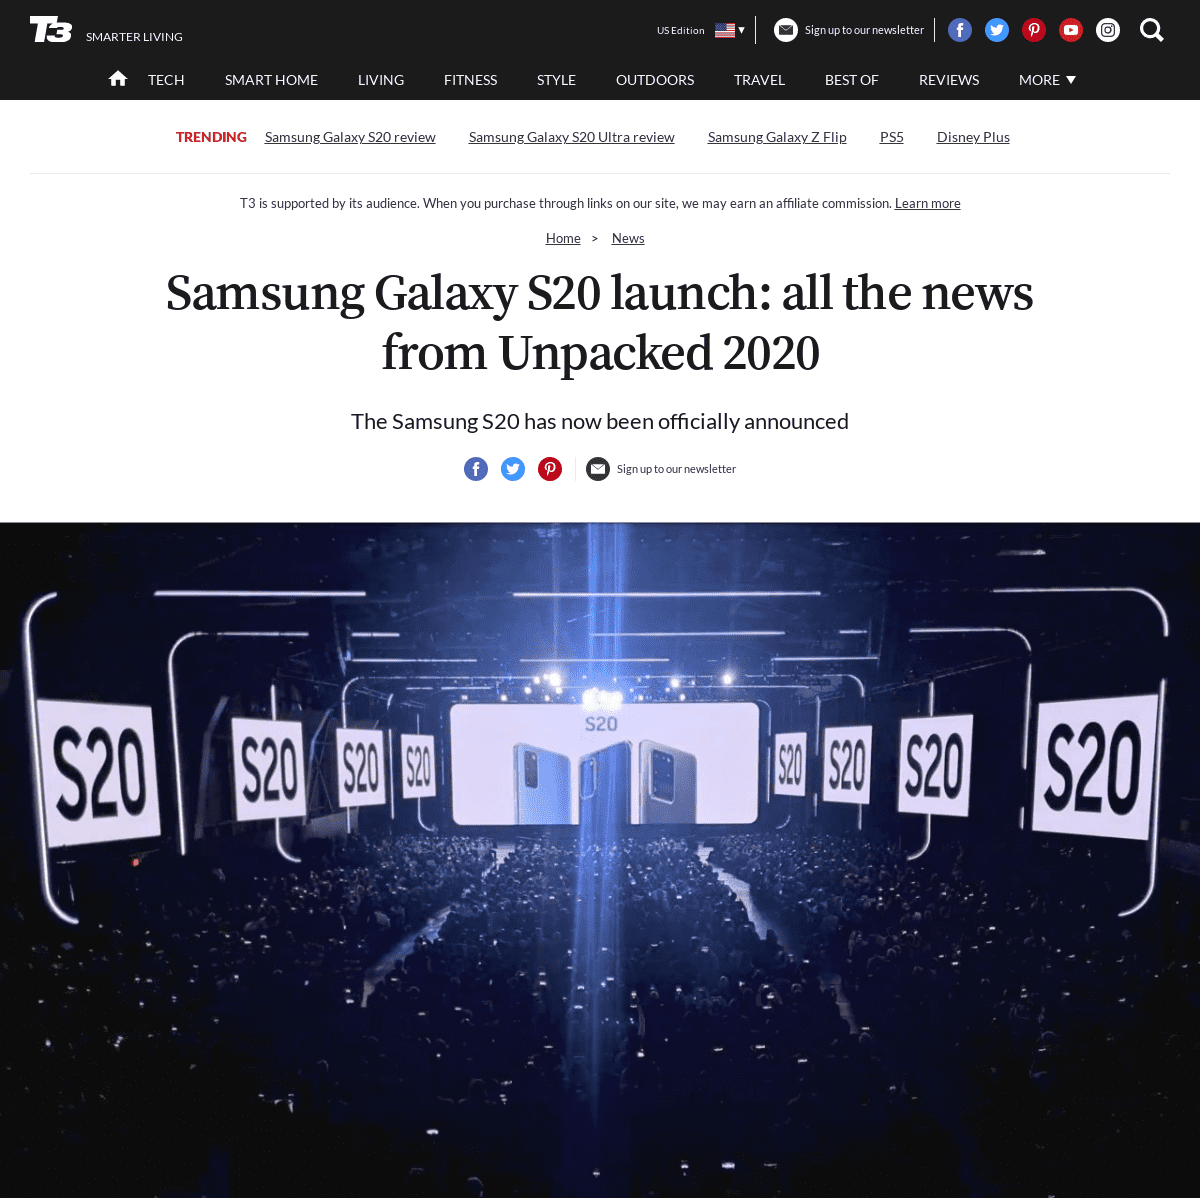 Samsung Galaxy S20 launch- all the news from Unpacked 2020 - T3